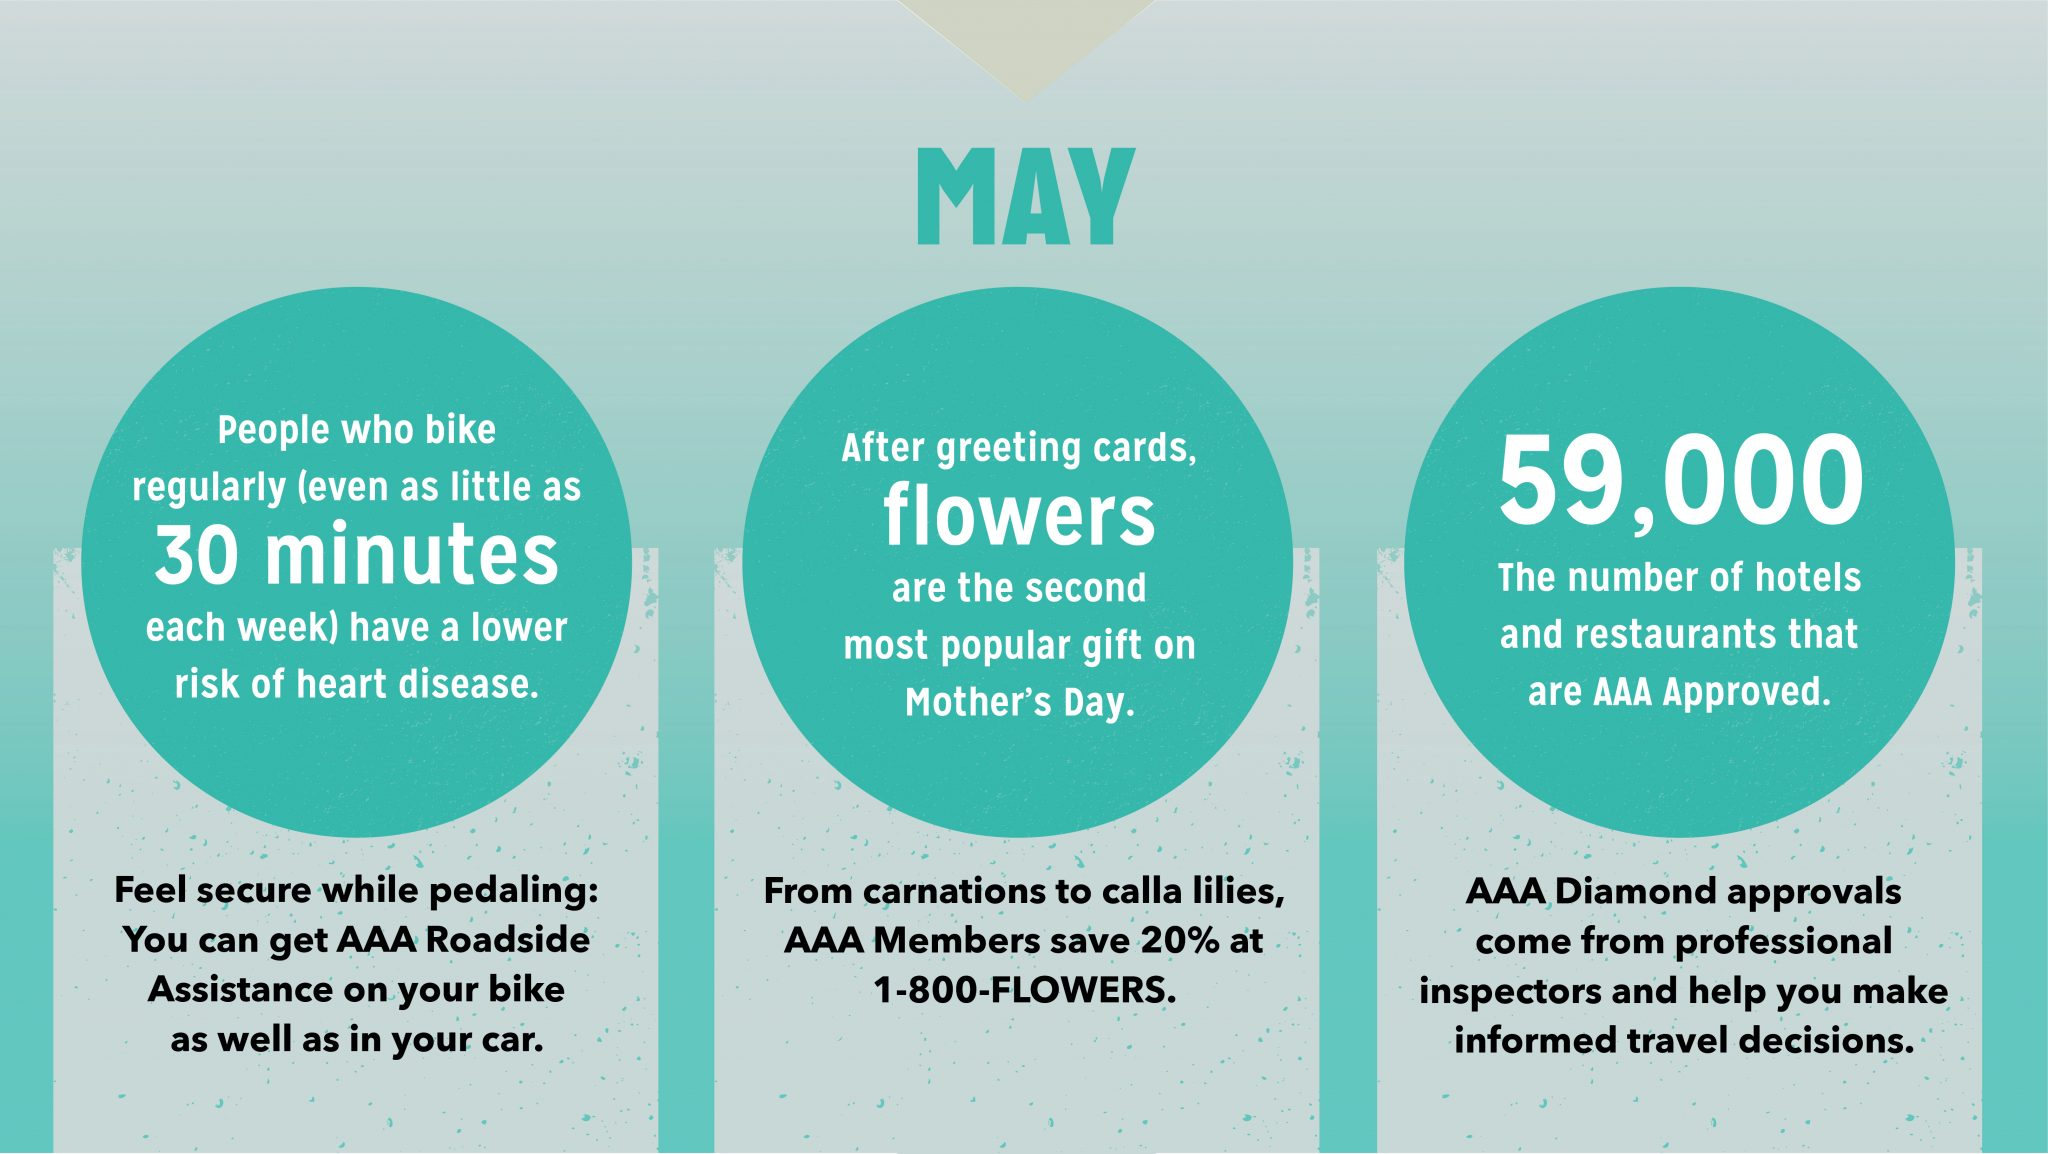 aaa-membership-benefits-may